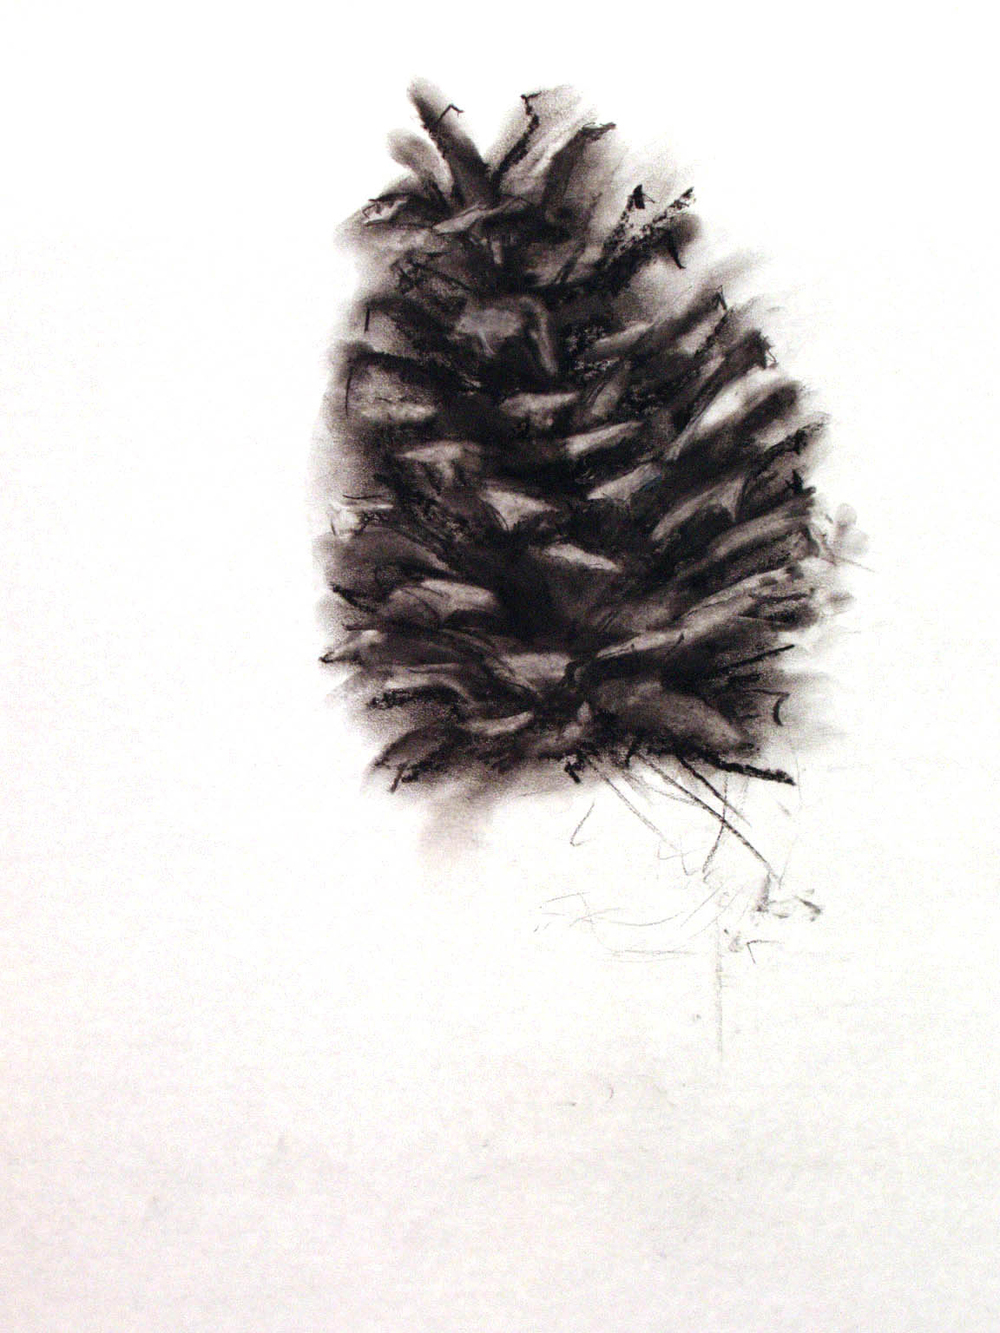 "PINE CONE     14"" x 20"" — Charcoal on drawing paper, 20"" x 24"" framed    $1200.00"